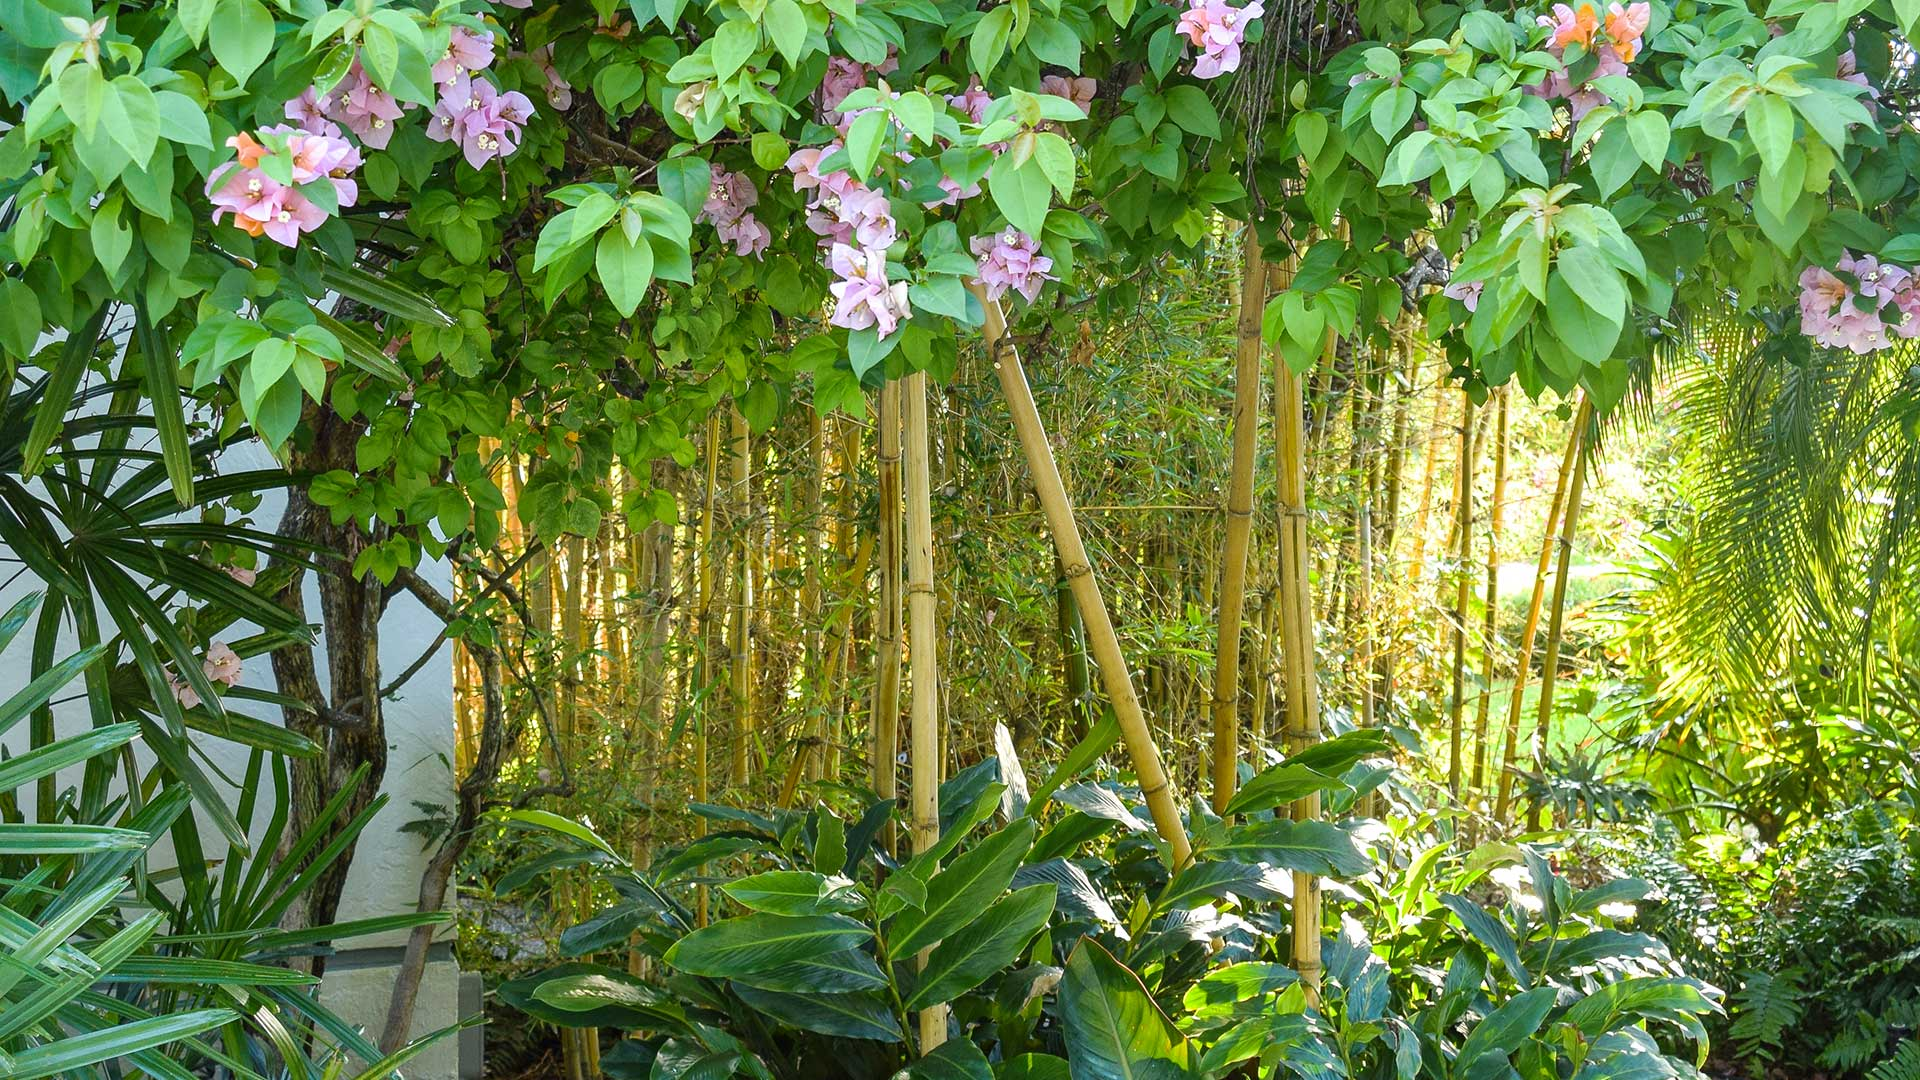 yard with bamboo and flowers